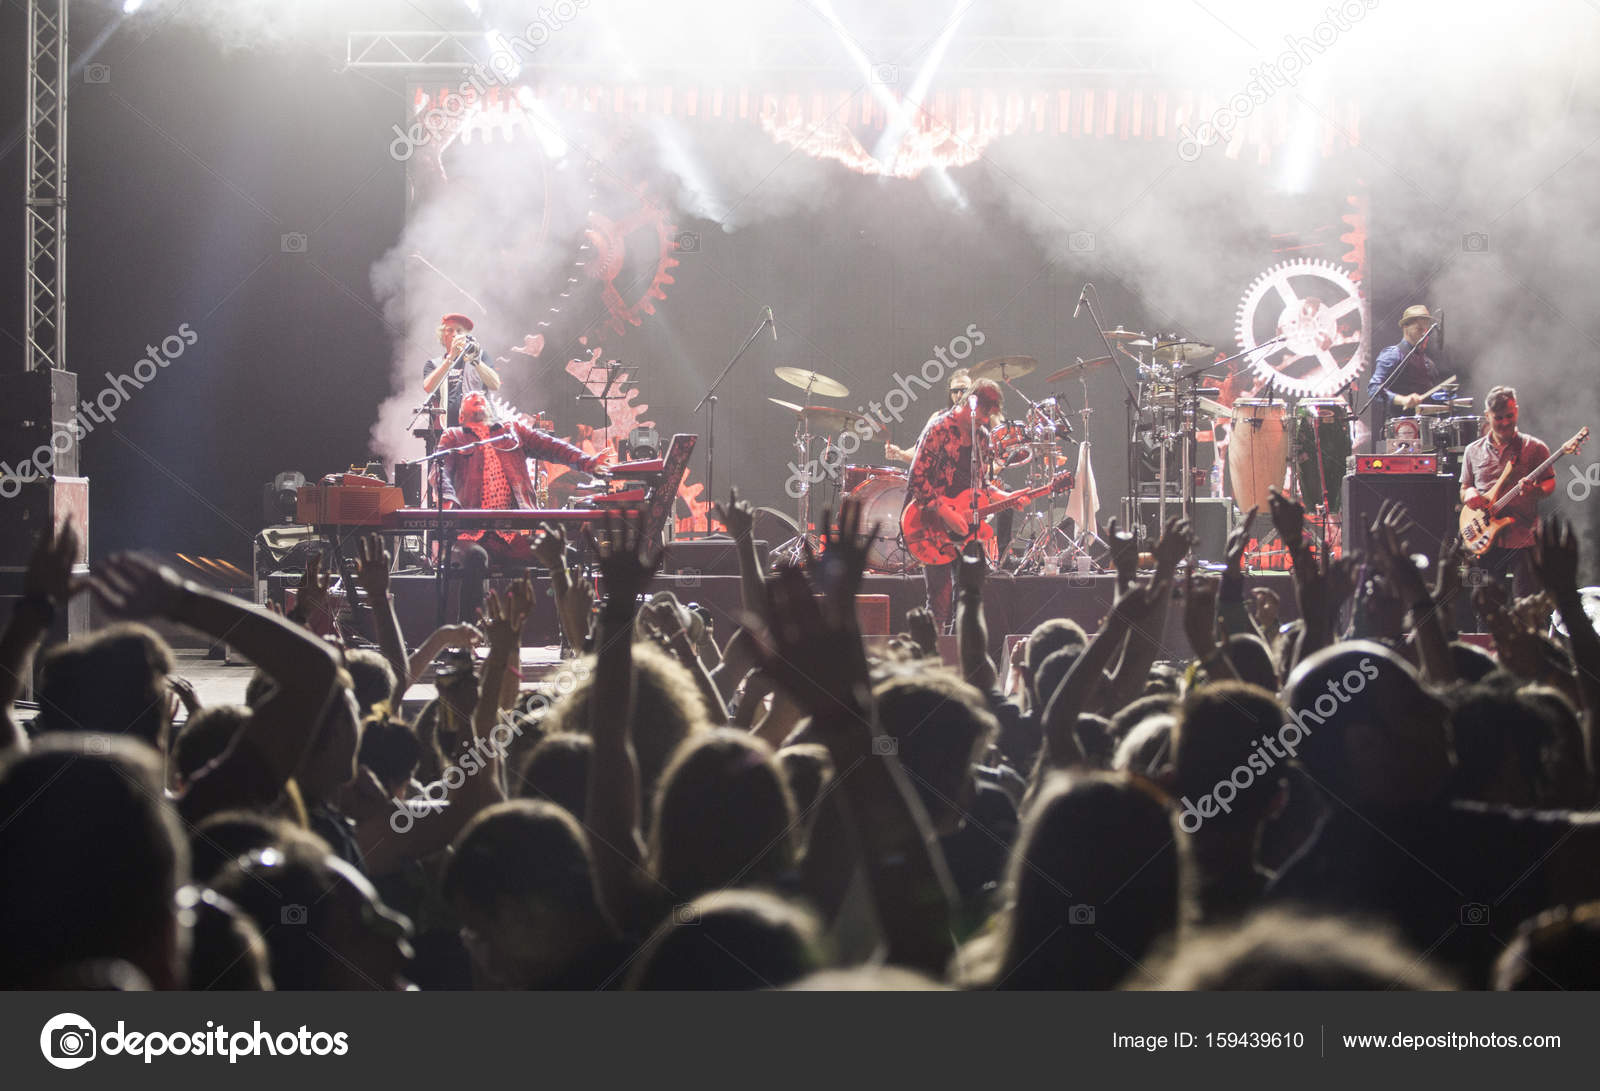 depositphotos_159439610-stock-photo-band-performs-on-stage-rock.jpg?profile=RESIZE_710x